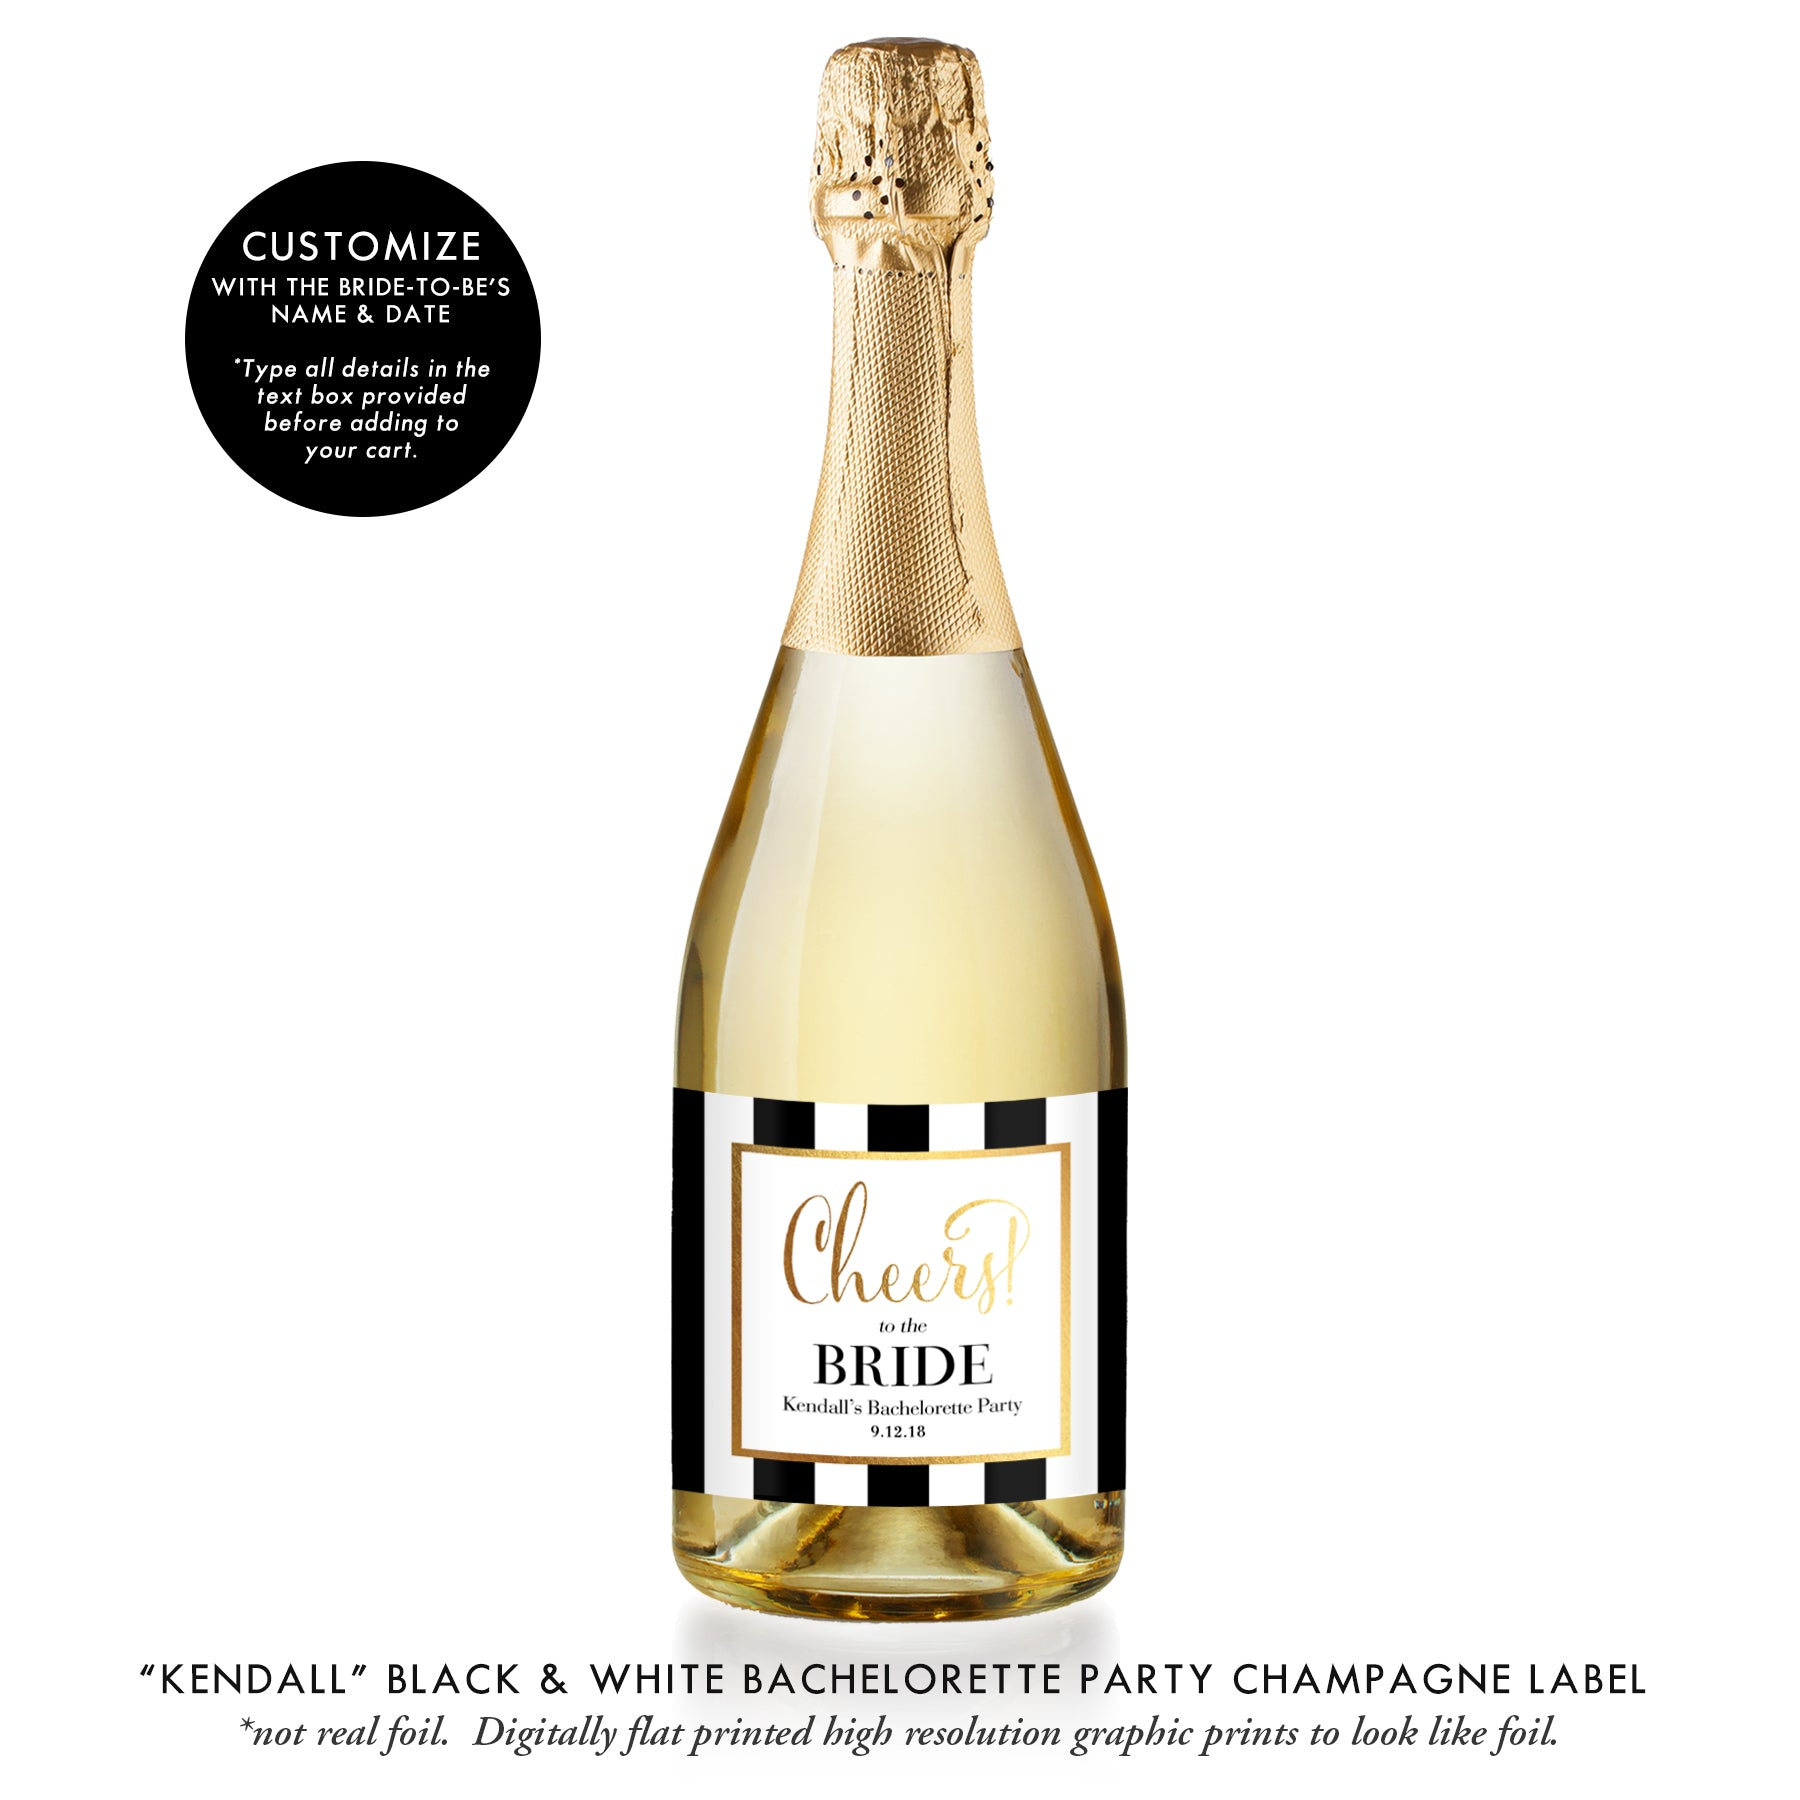 """Kendall"" Black & White Bachelorette Party Champagne Labels"